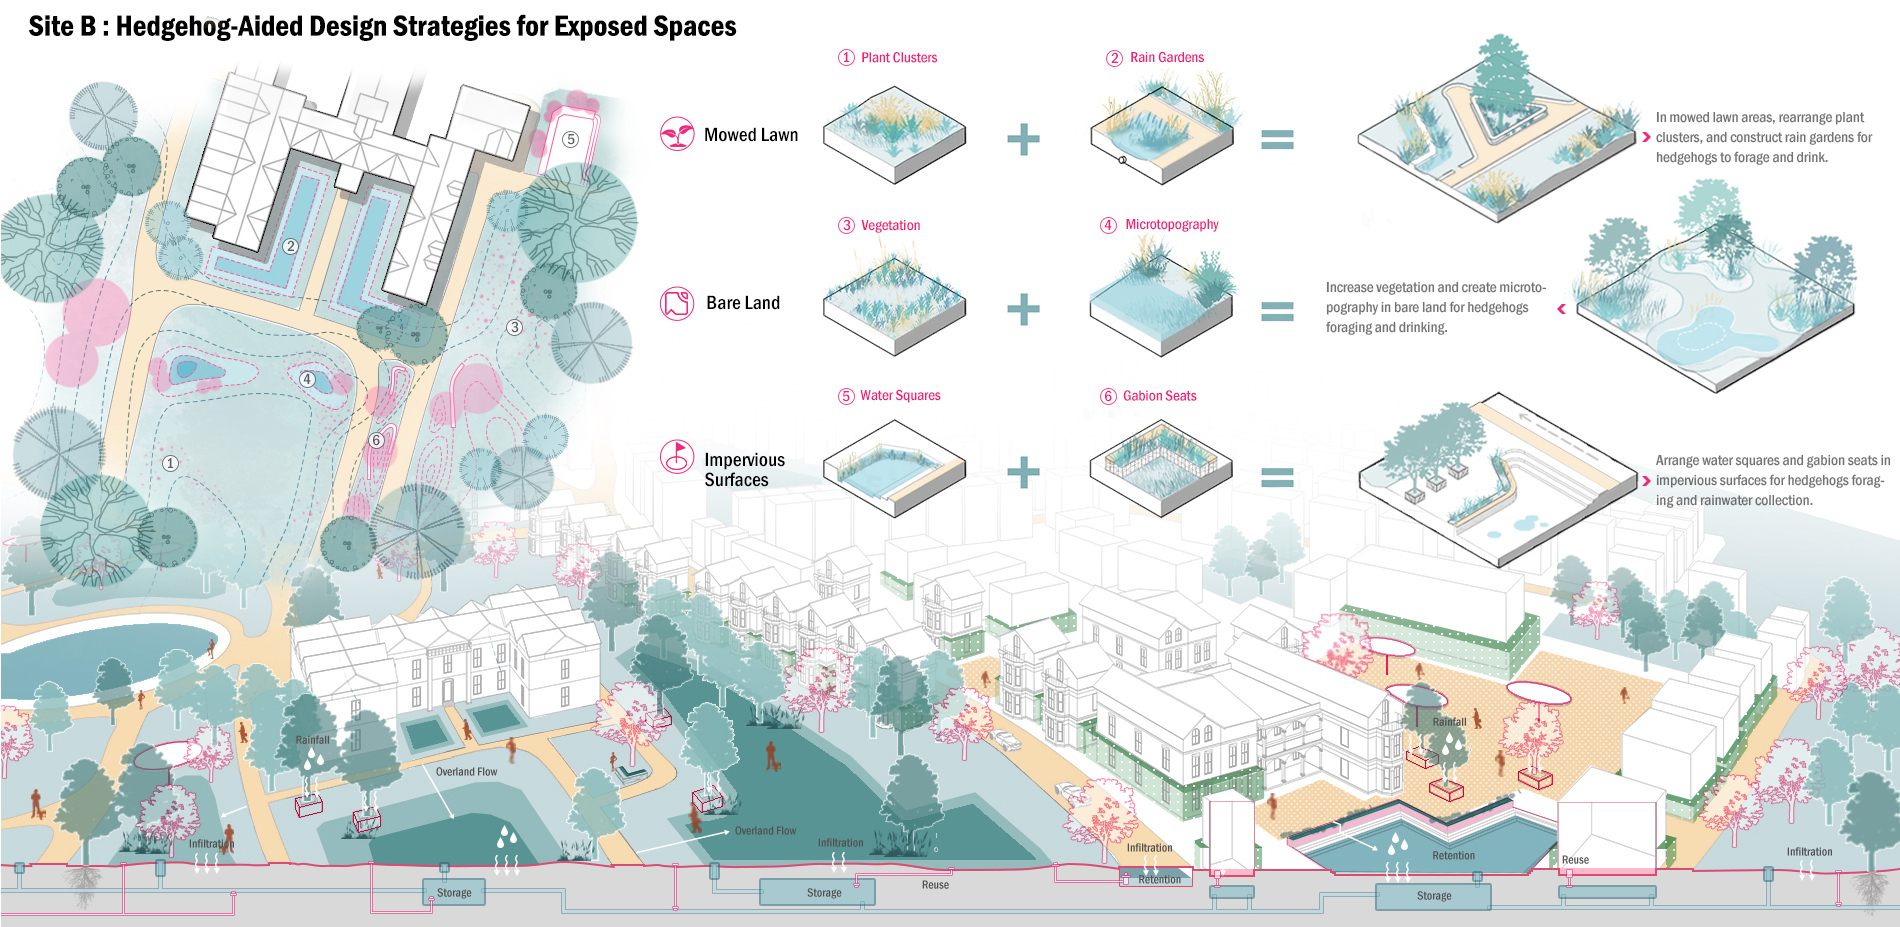 Site B: Hedgehog-Aided Design Strategies for Exposed Spaces